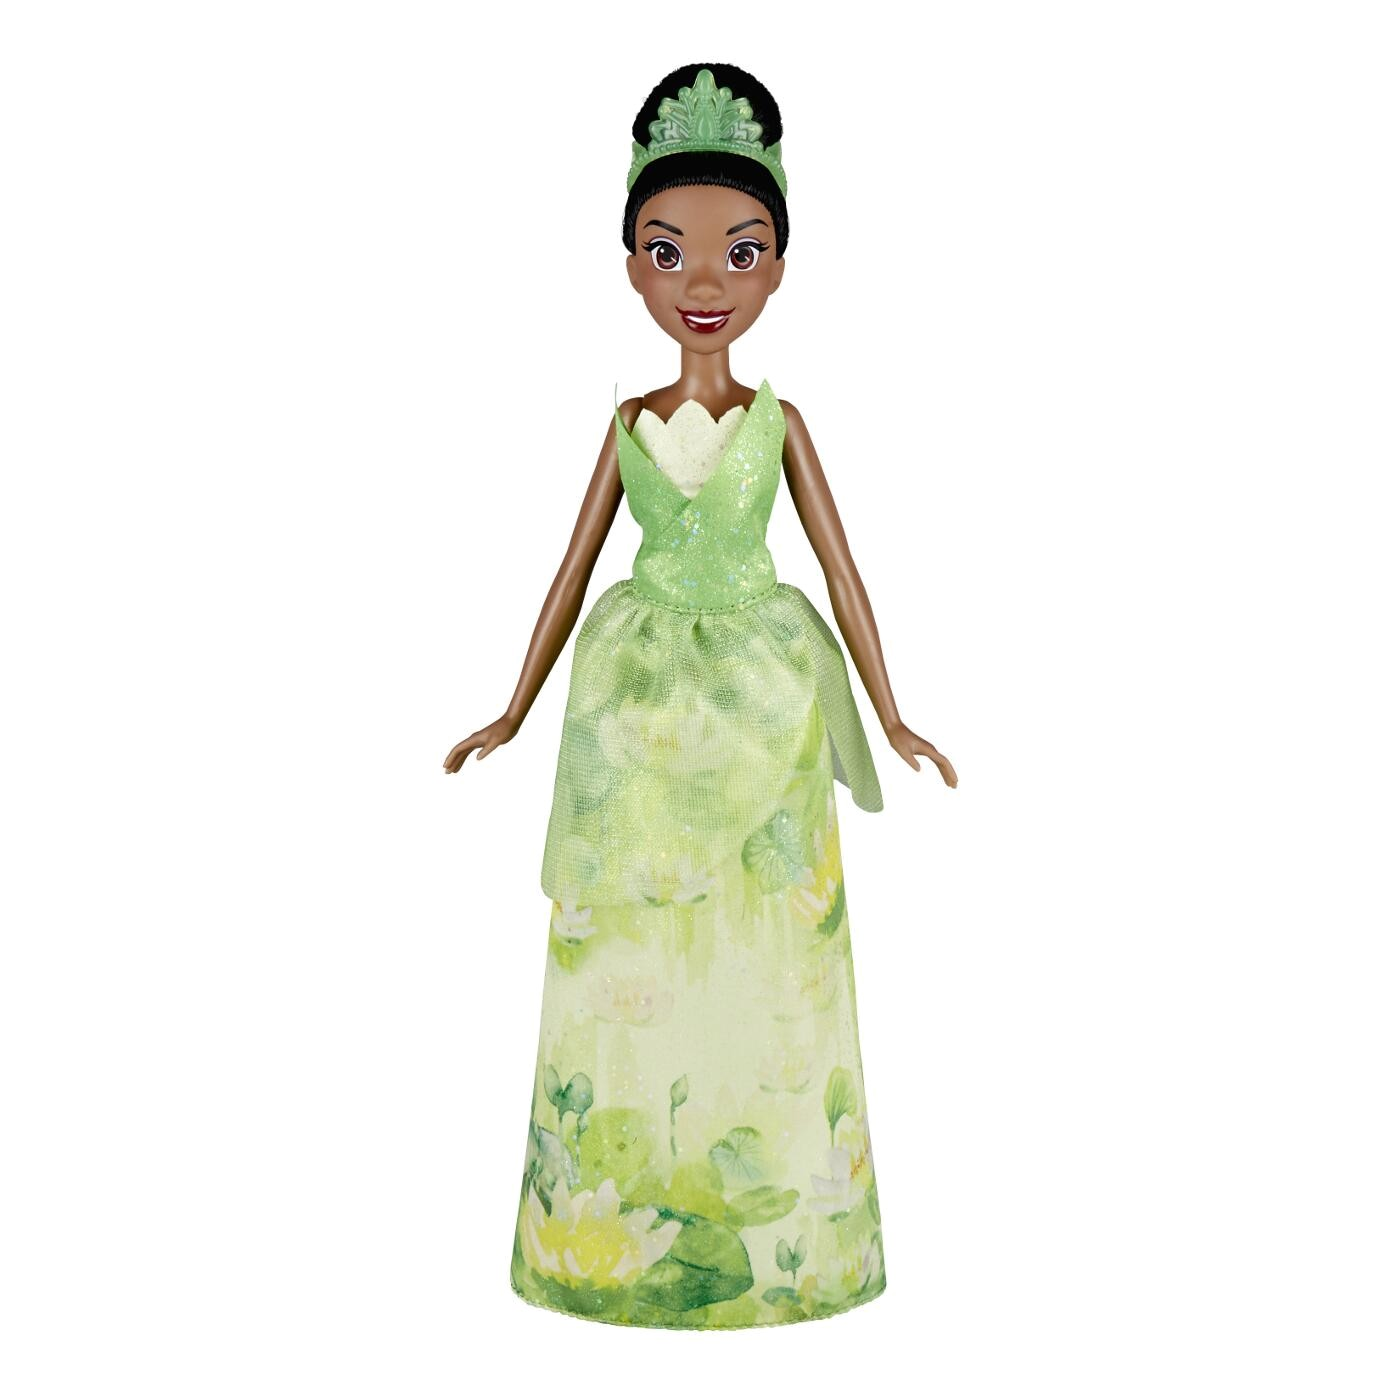 DISNEY PRINCESS CLASSIC FASHION DOLL